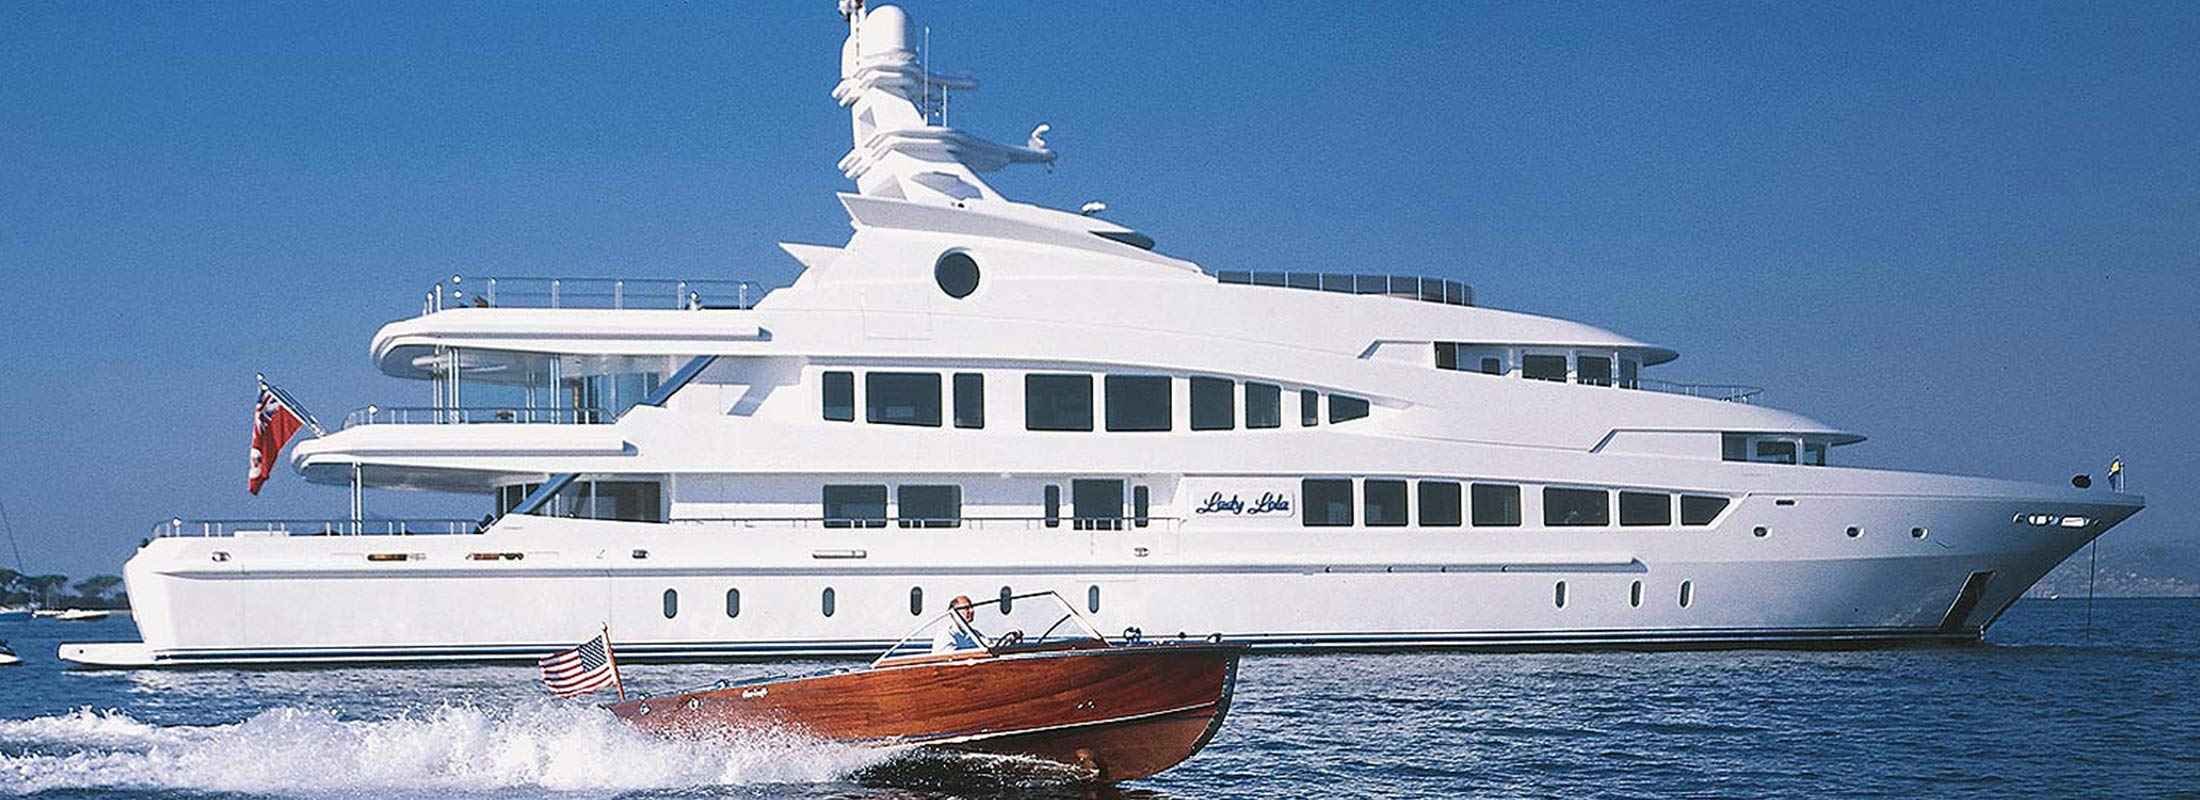 Lucky Lady luxury yacht charter Motor Yacht for Charter Caribbean Sea slider 2